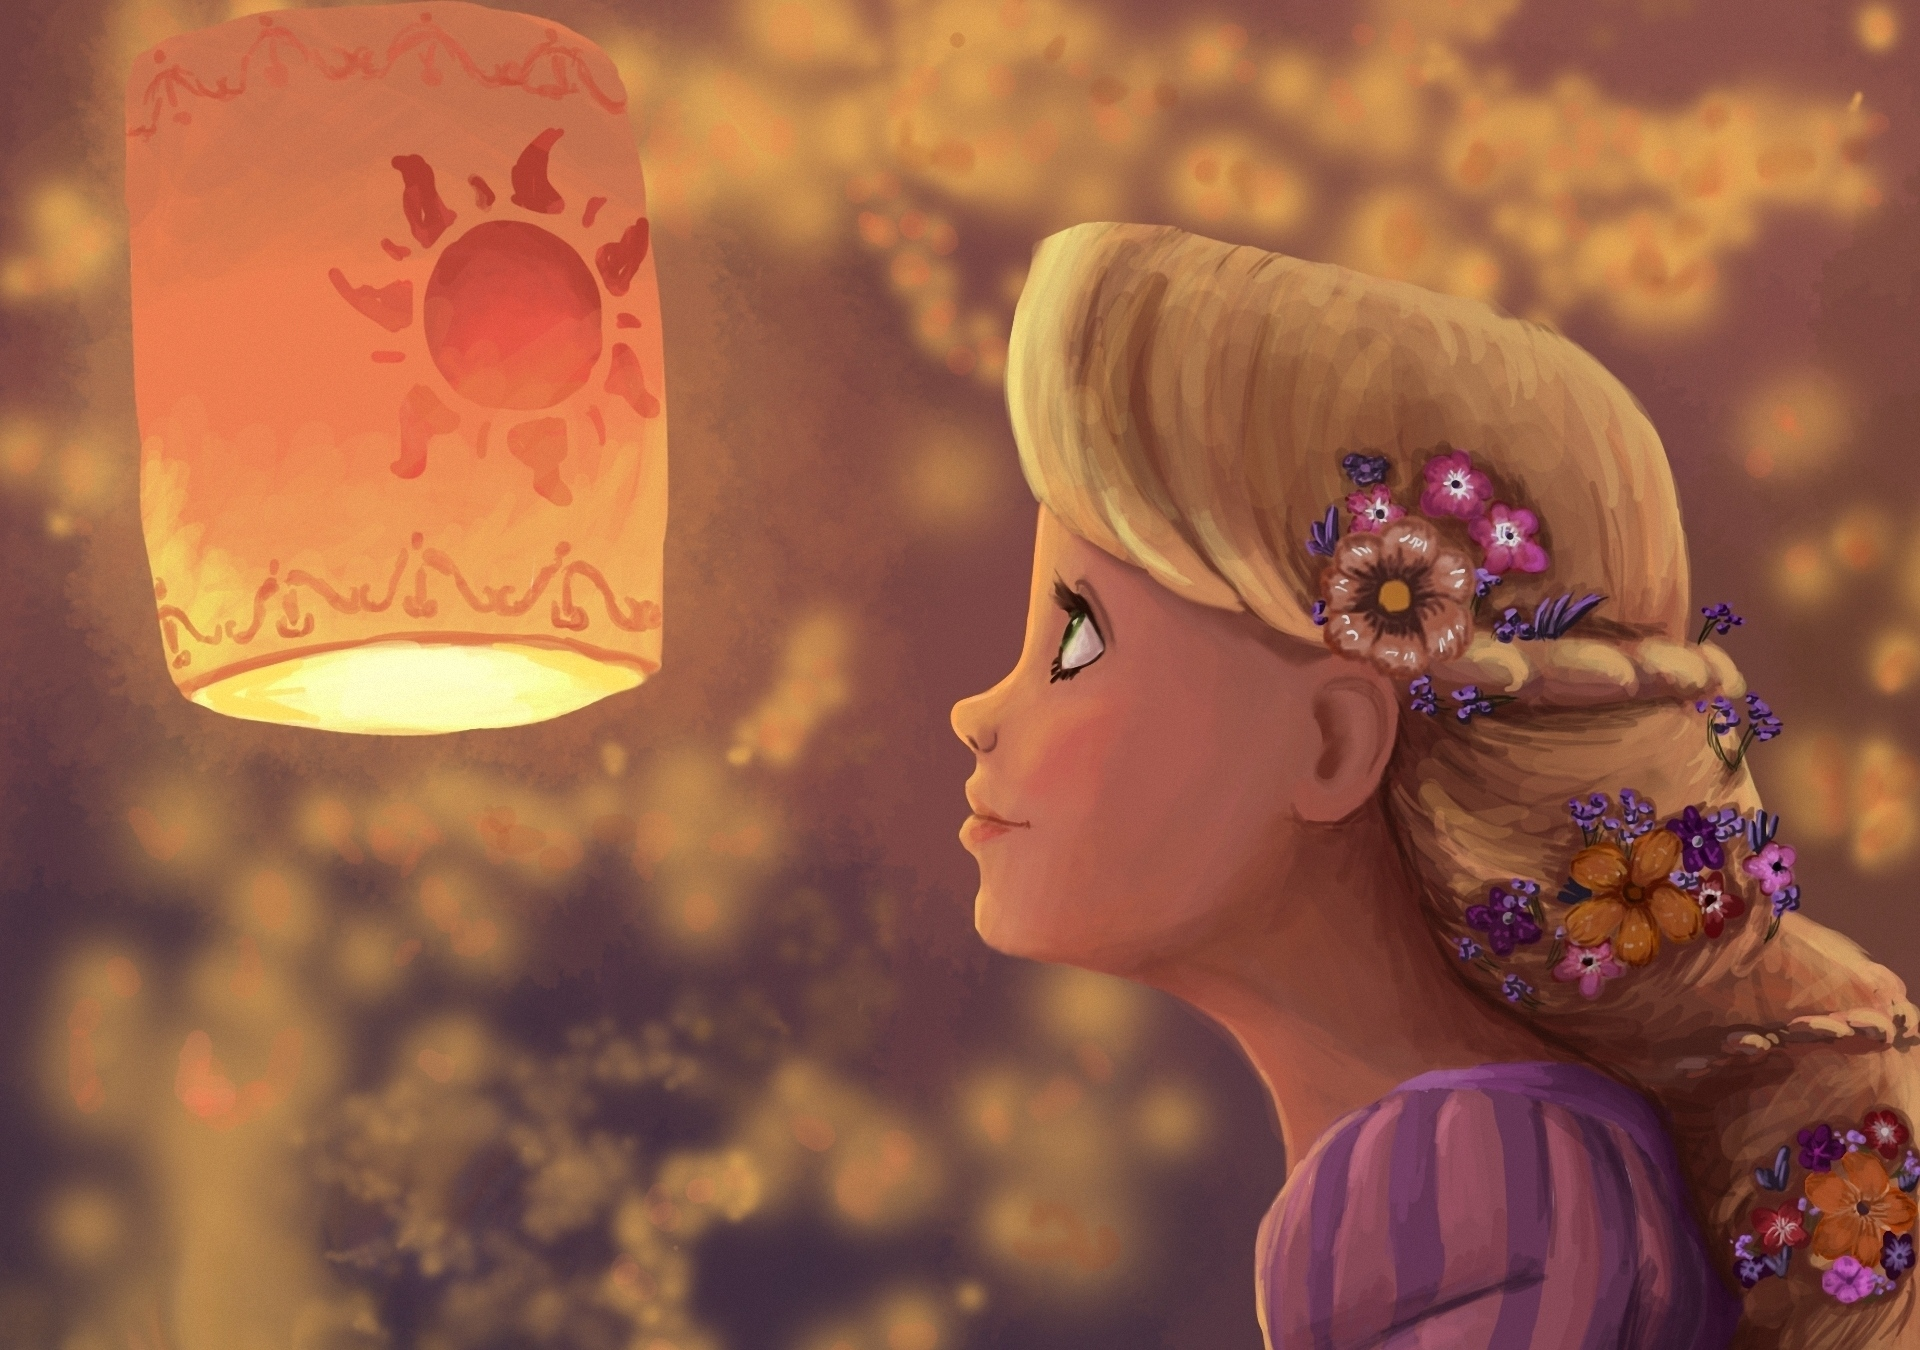 Rapunzel Wallpapers Wallpapers All Superior Rapunzel Wallpapers Backgrounds Wallpapersplanet Net